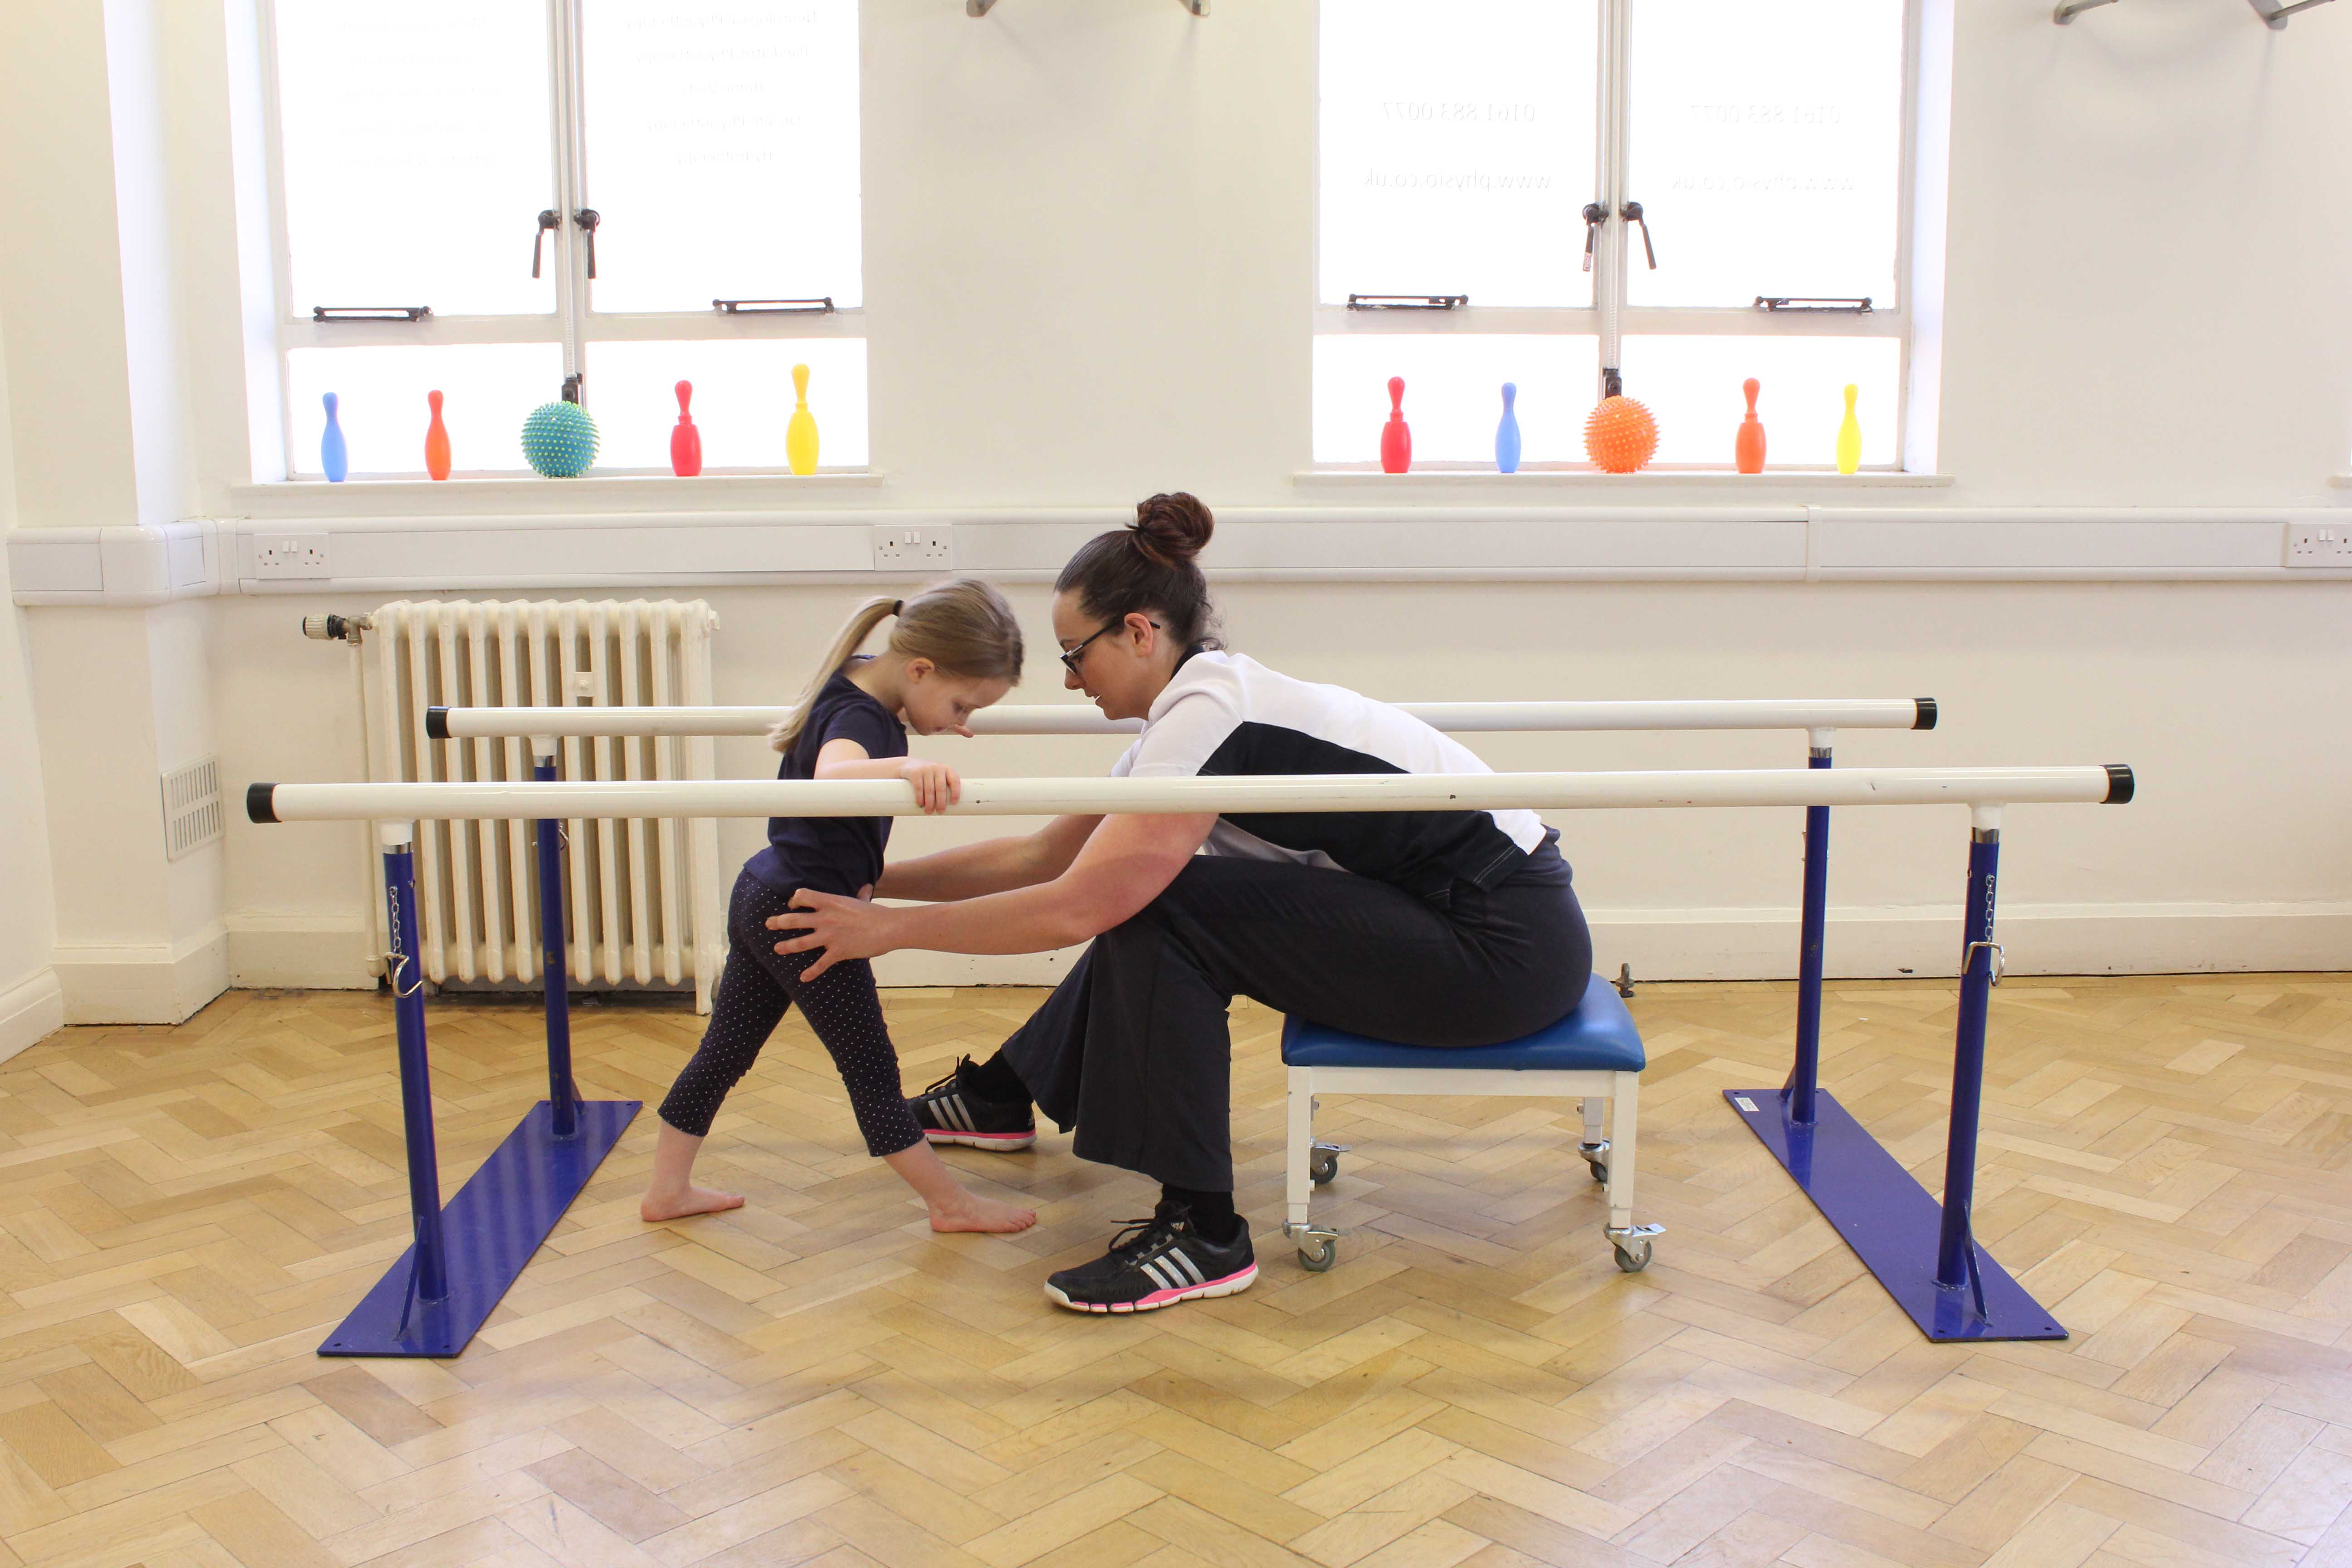 Mobility exercises assisted by the physiotherapist between the parallel bars